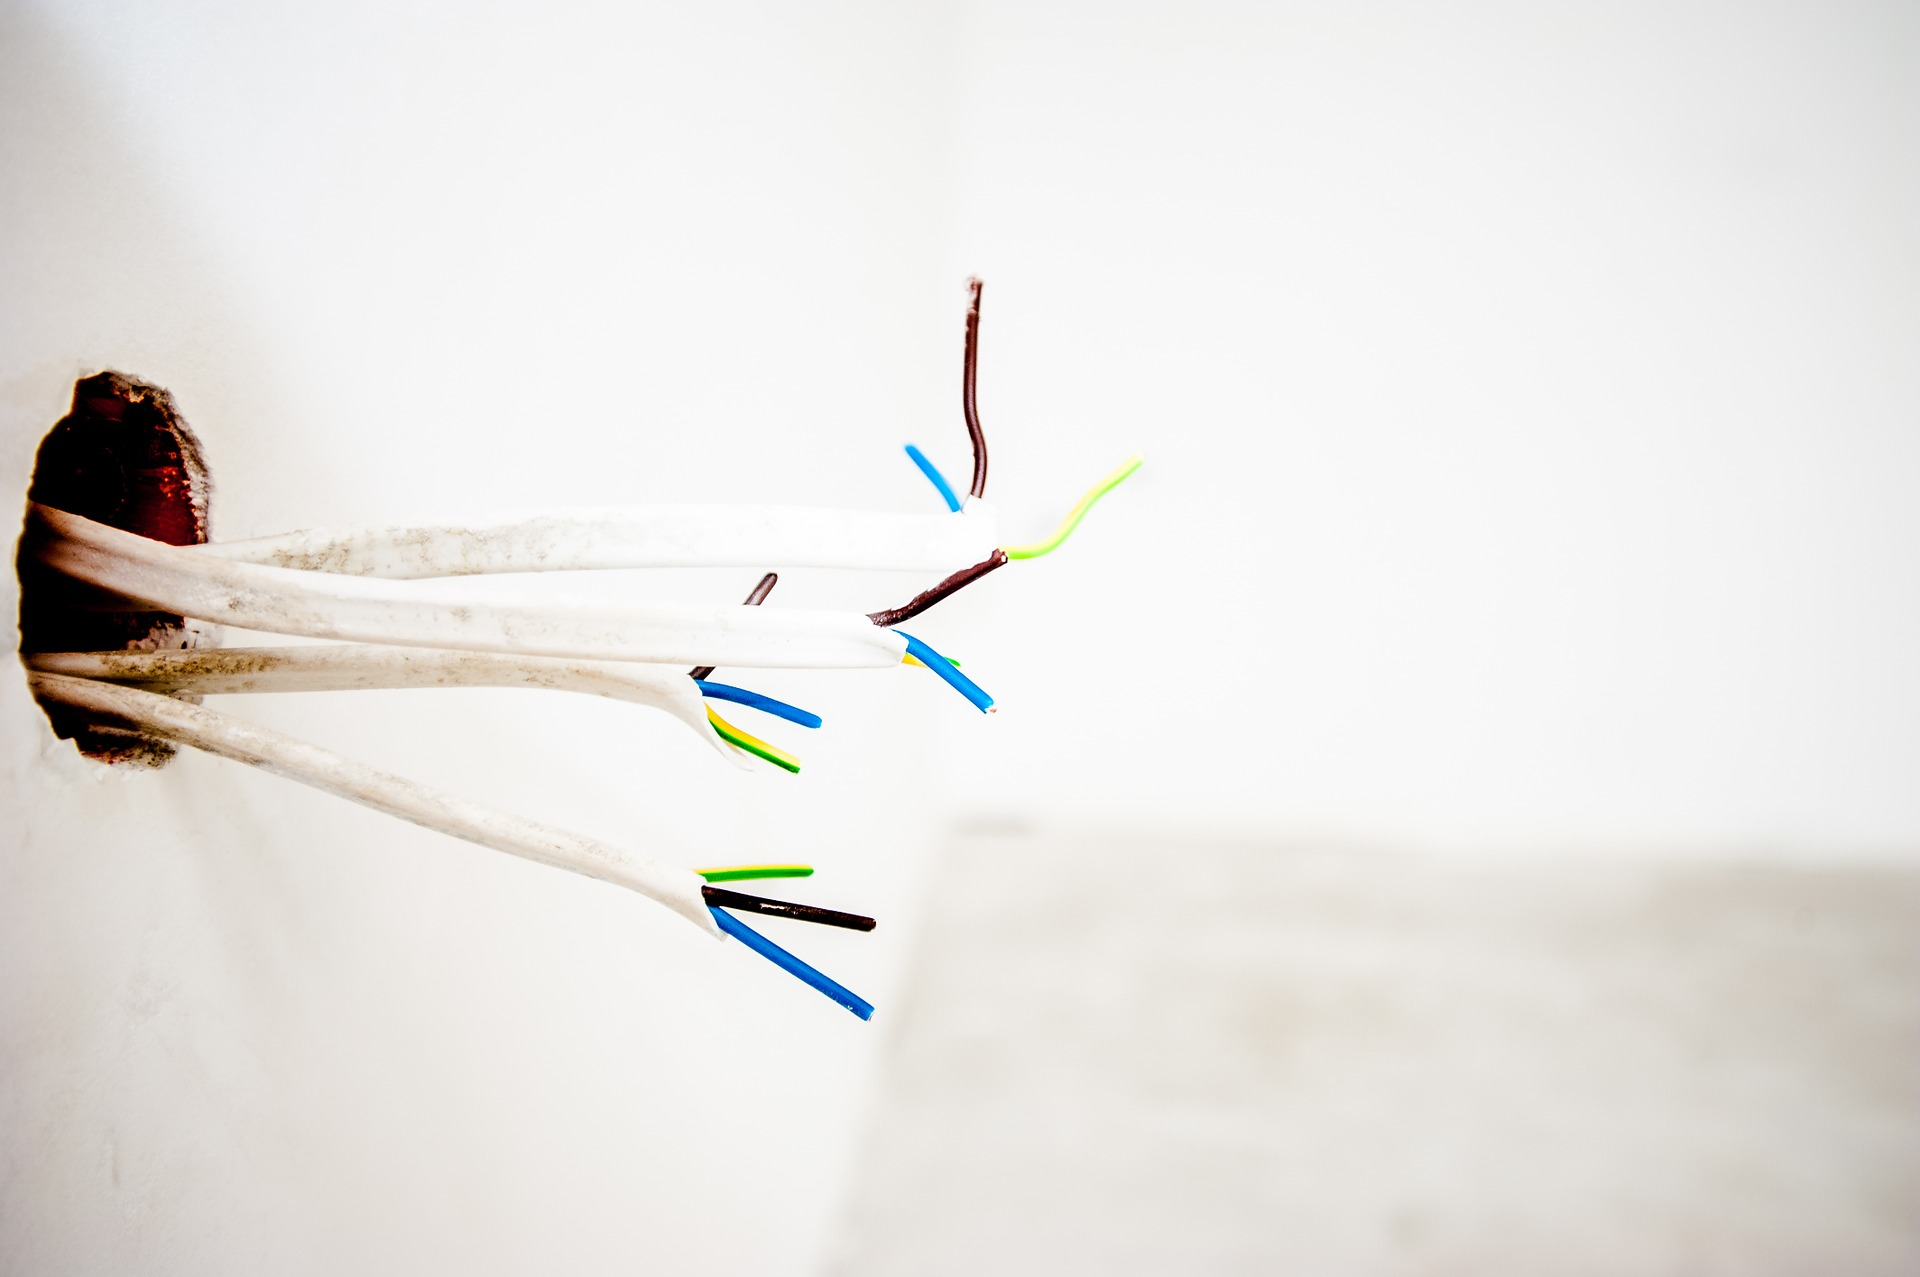 cables-1080569_1920